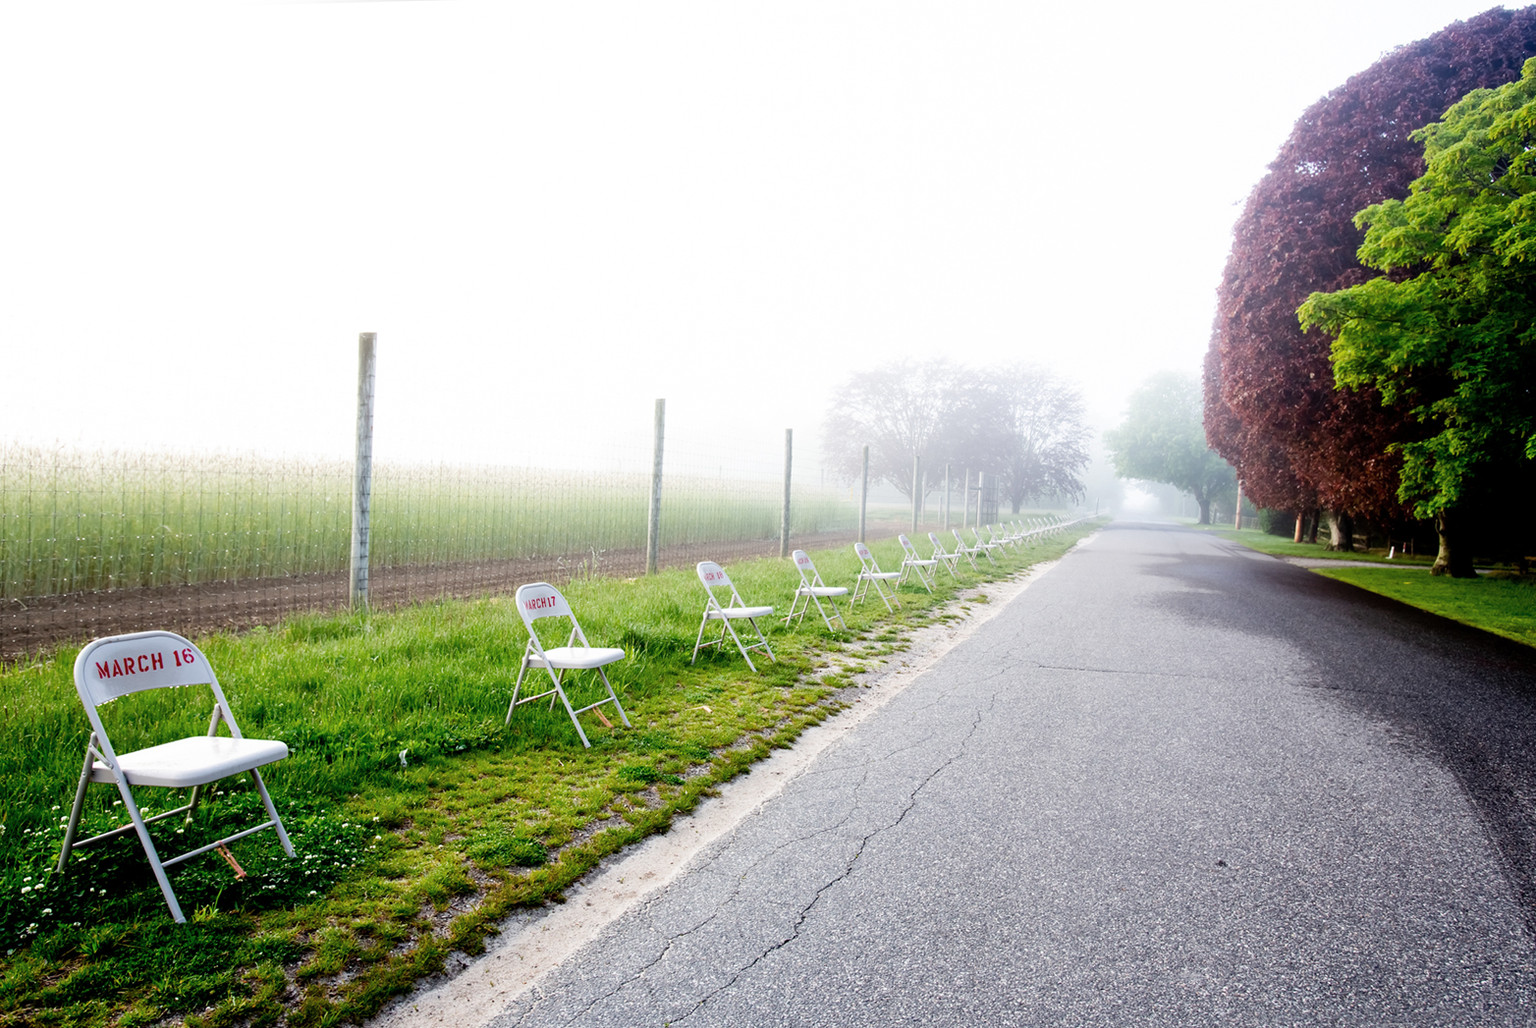 """""""When,"""" 2020, Toni Ross and Sara Salaway, site-specific, public art installation, 65 hand-stenciled folding chairs placed at 6' intervals in Wainscott, NY; 450 feet long. On view May 9 - June 28; Philippe Cheng Photography"""